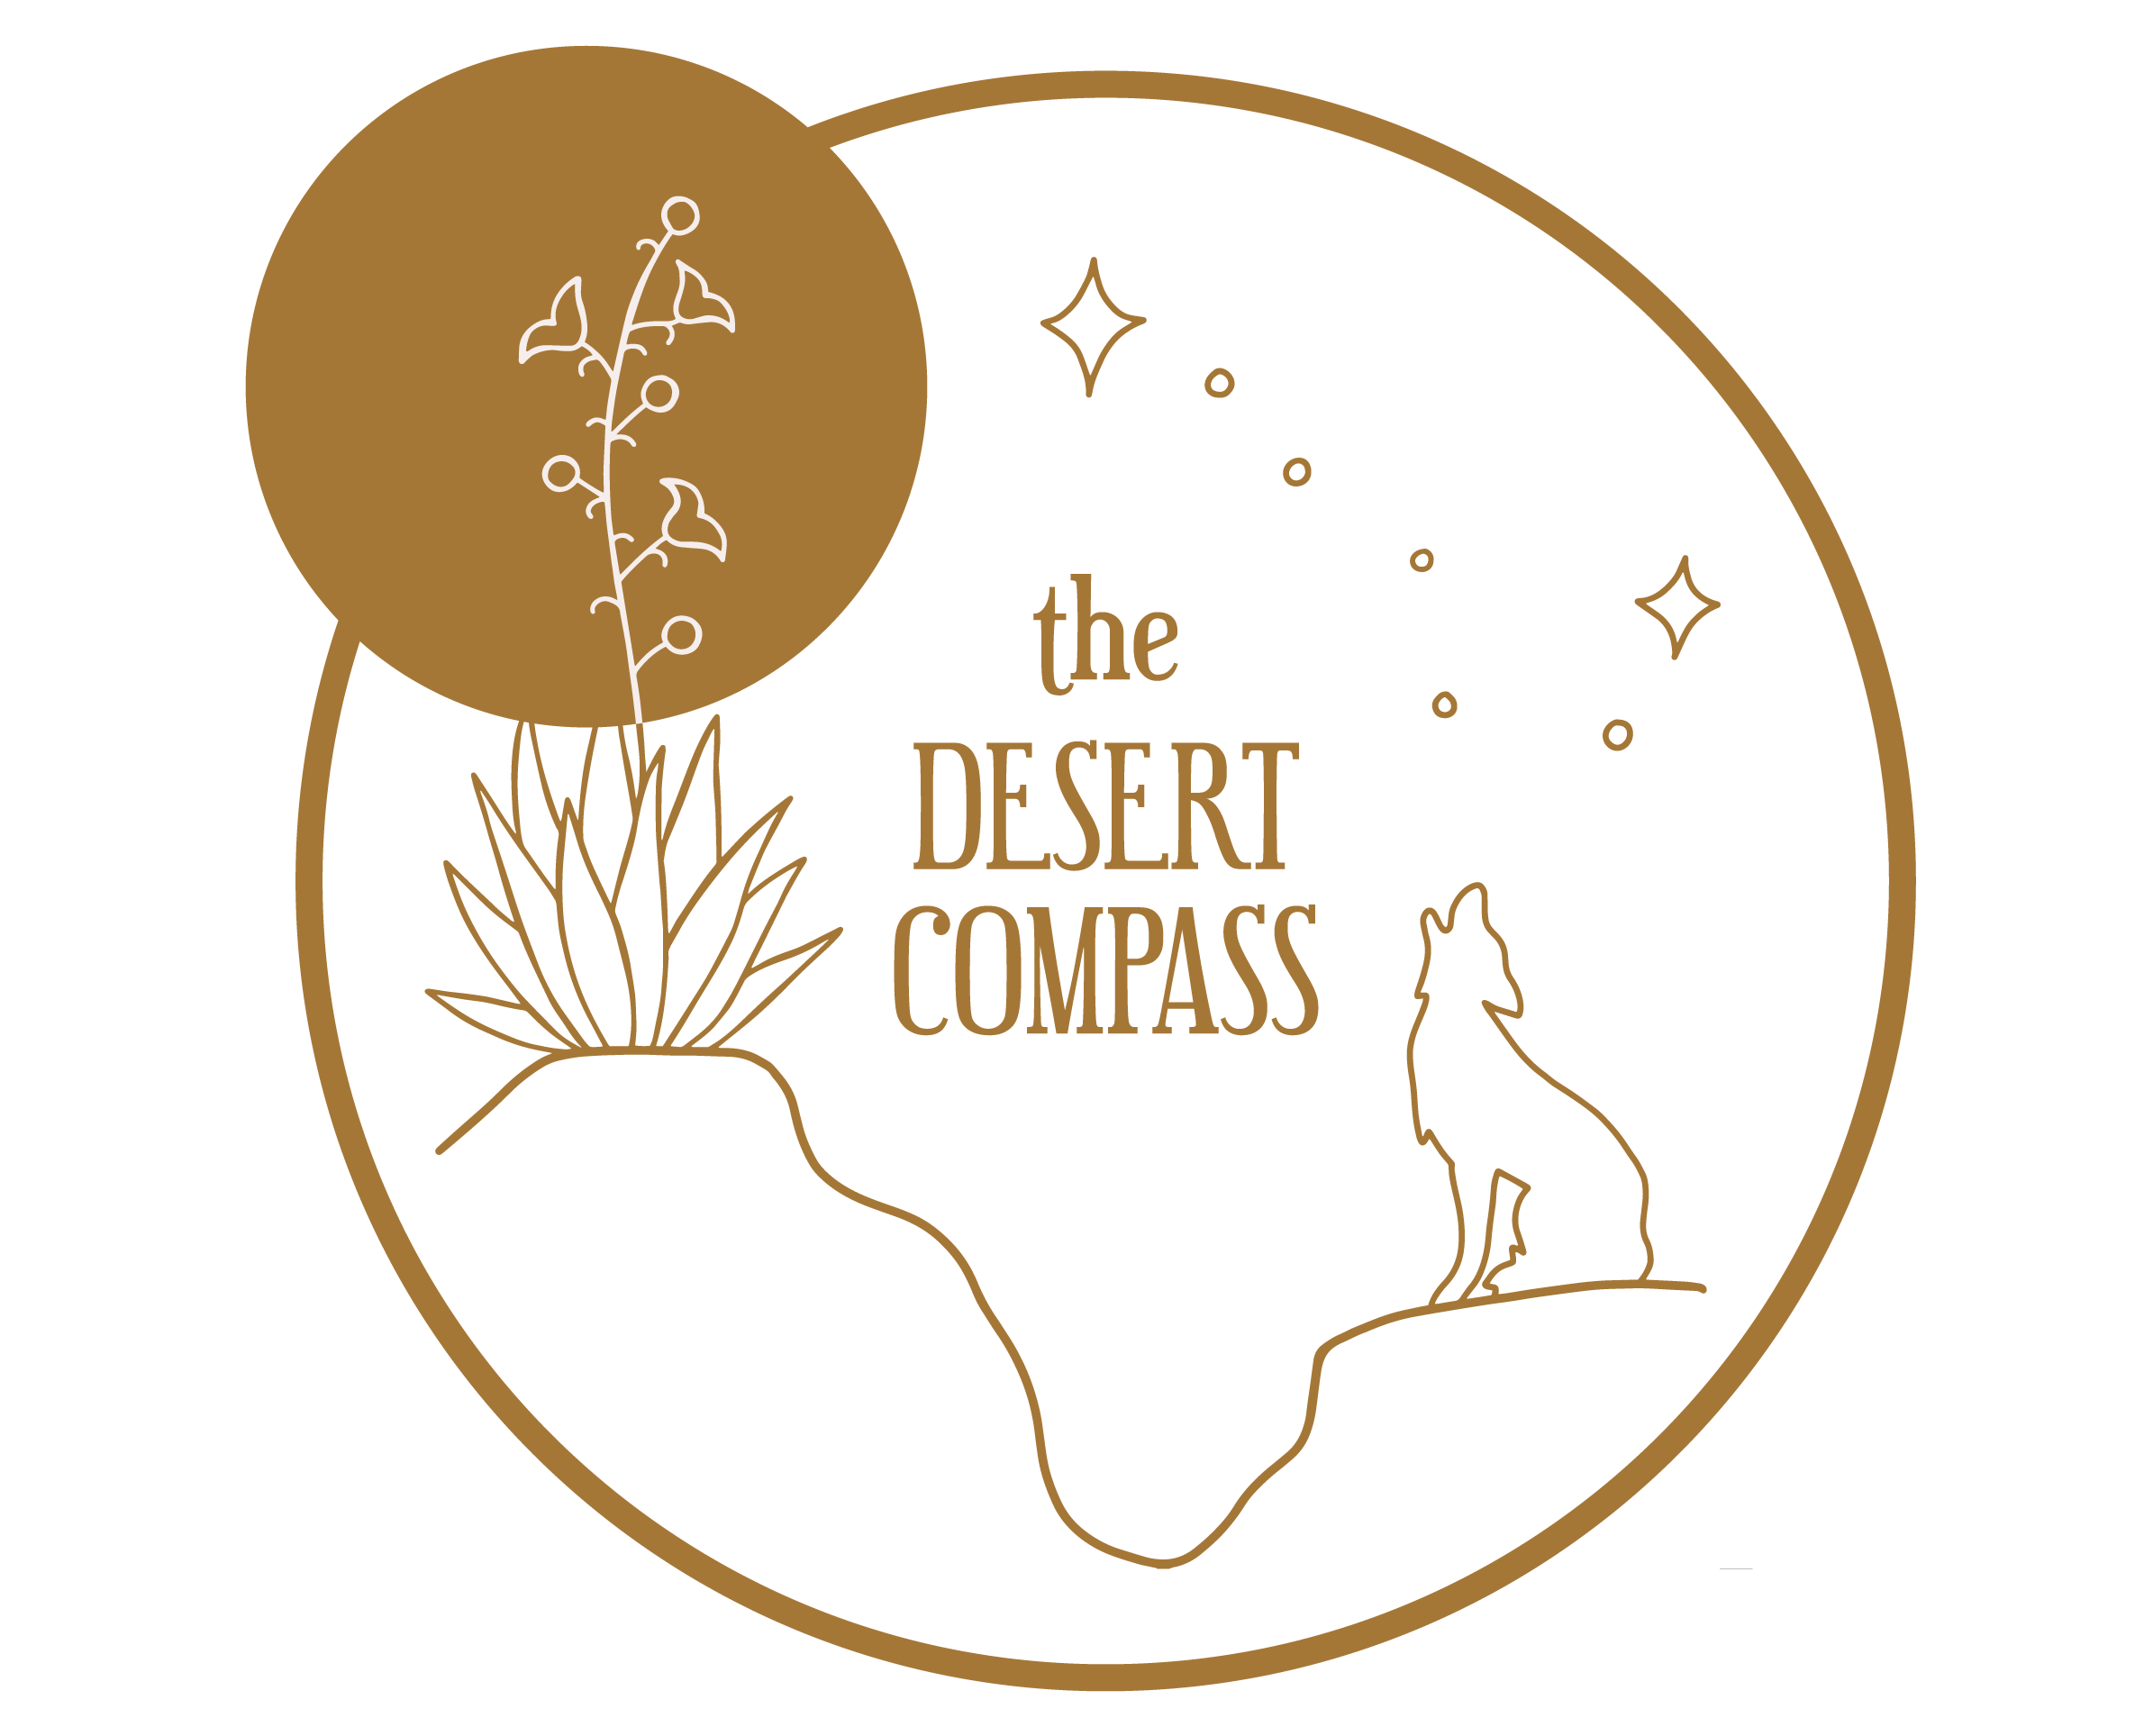 The Desert Compass